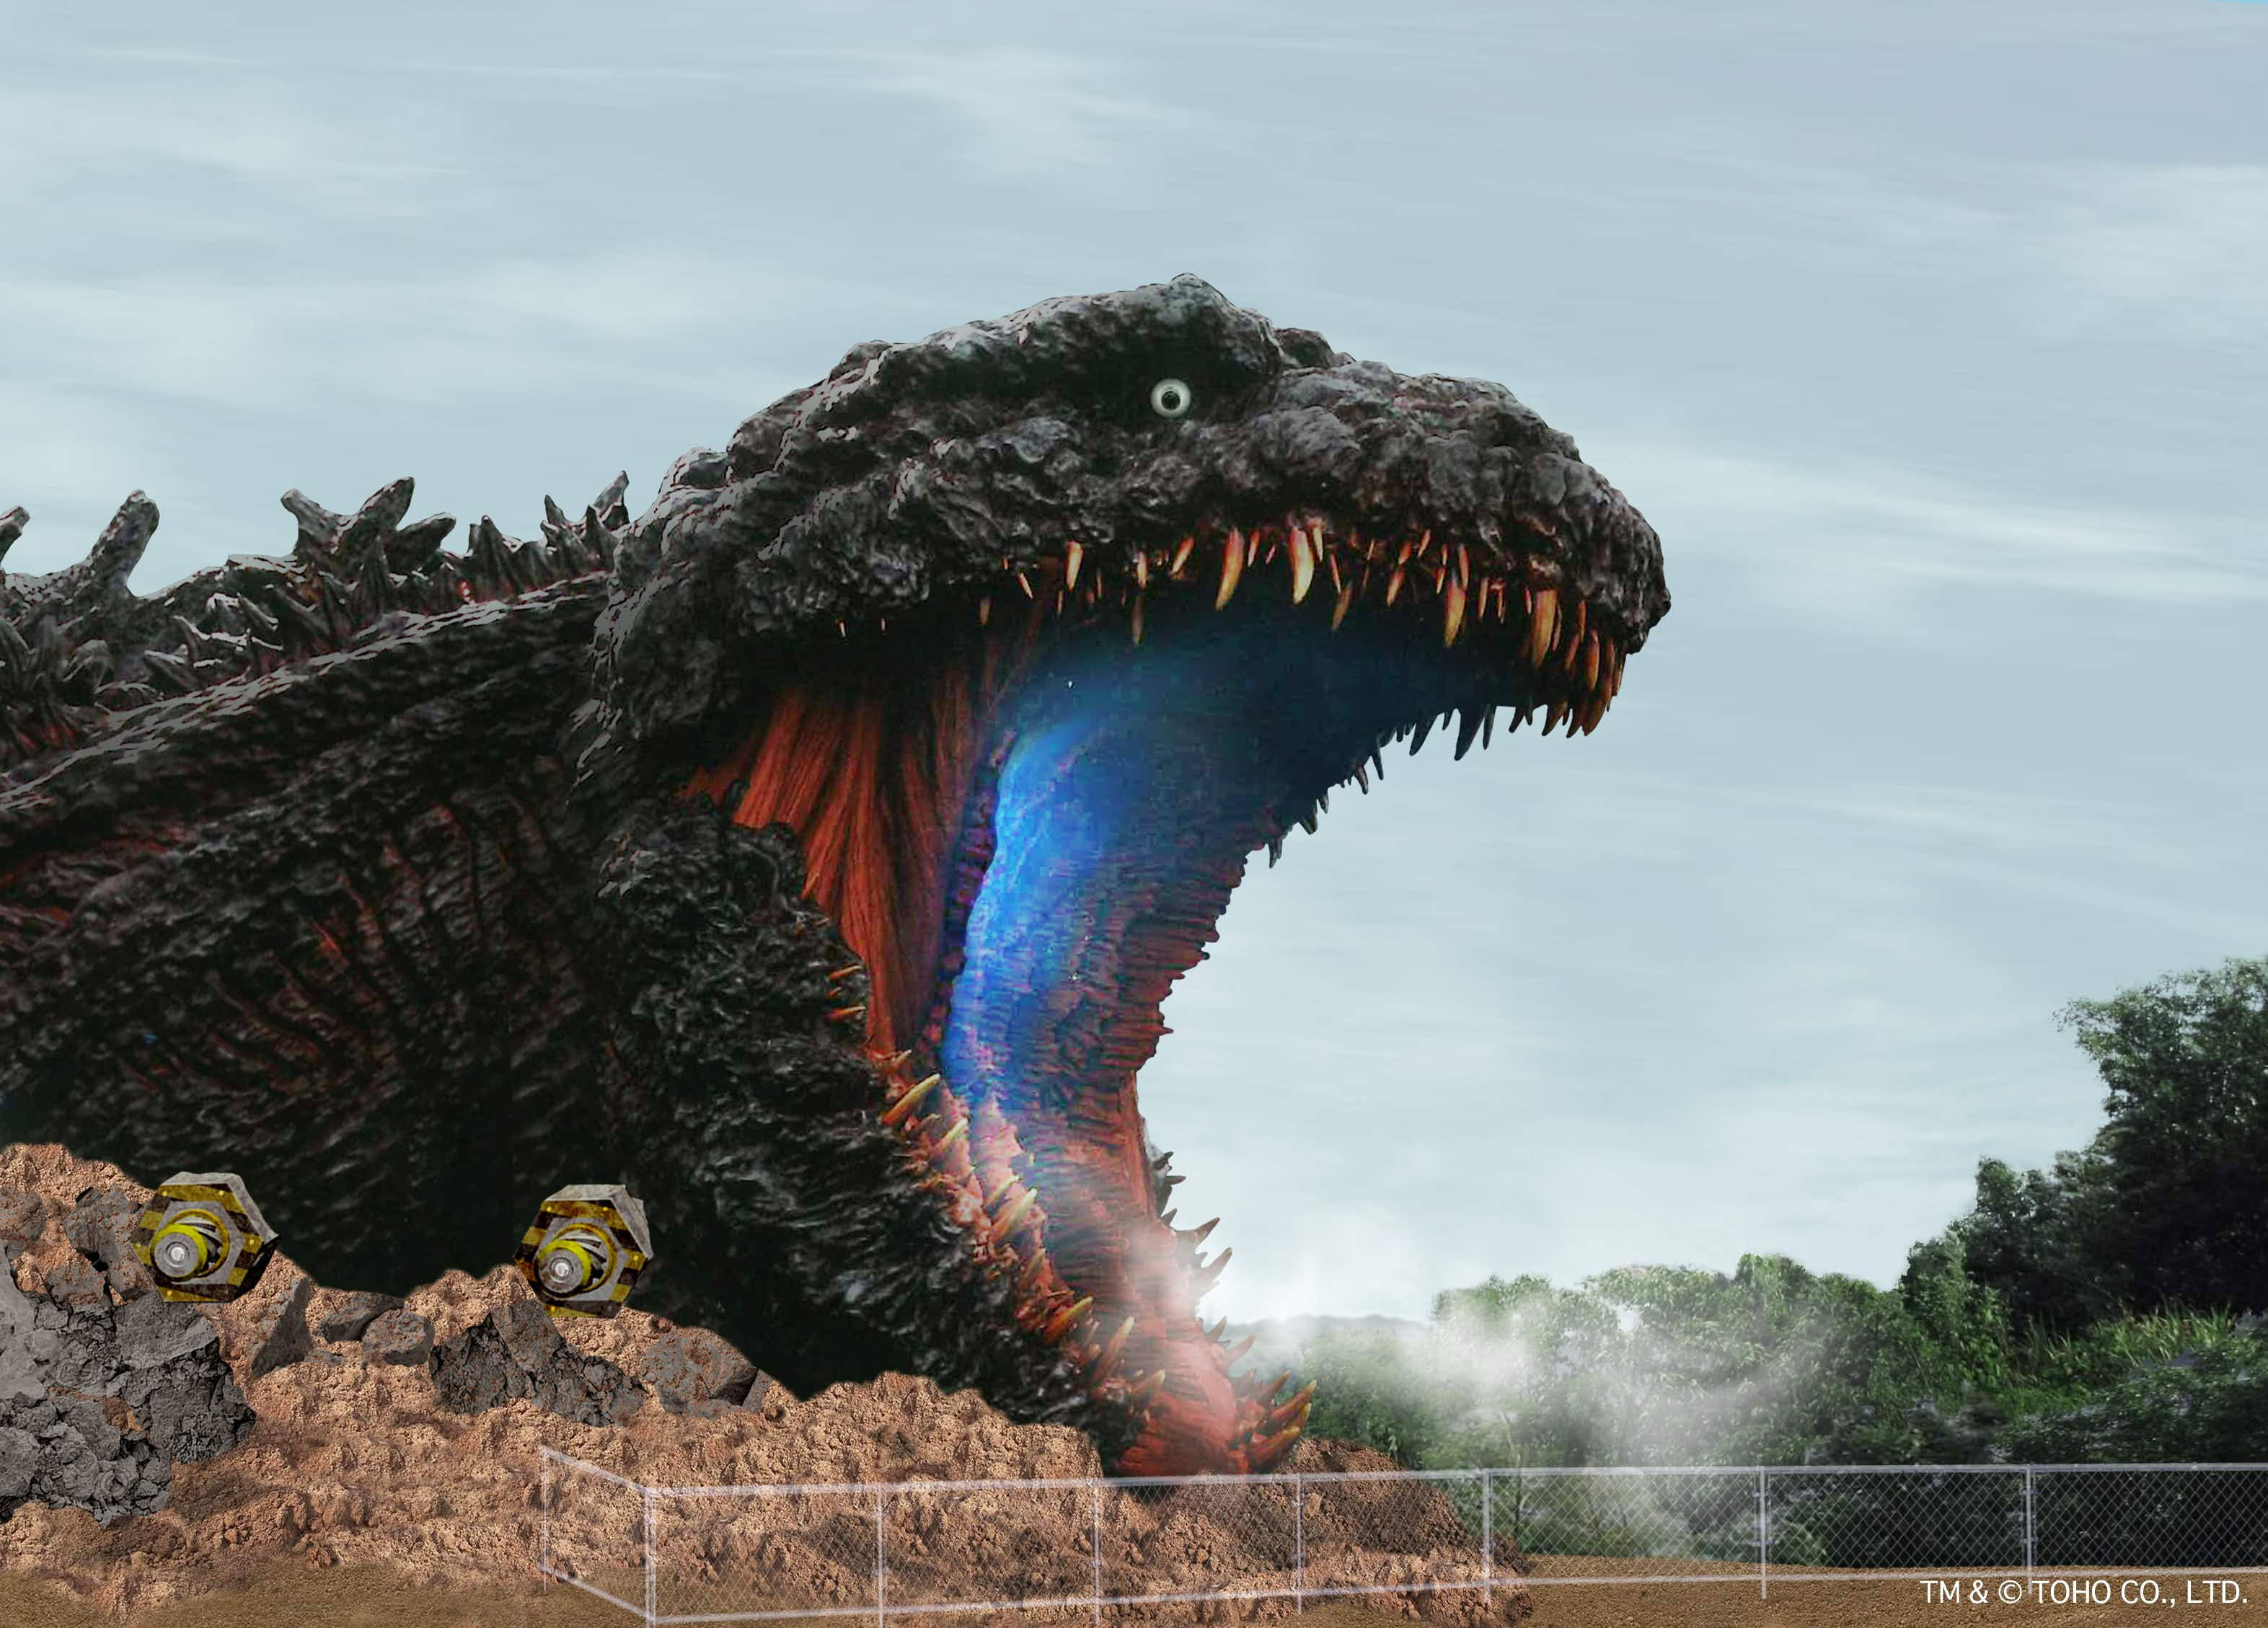 The world's biggest Godzilla attraction is coming to Japan